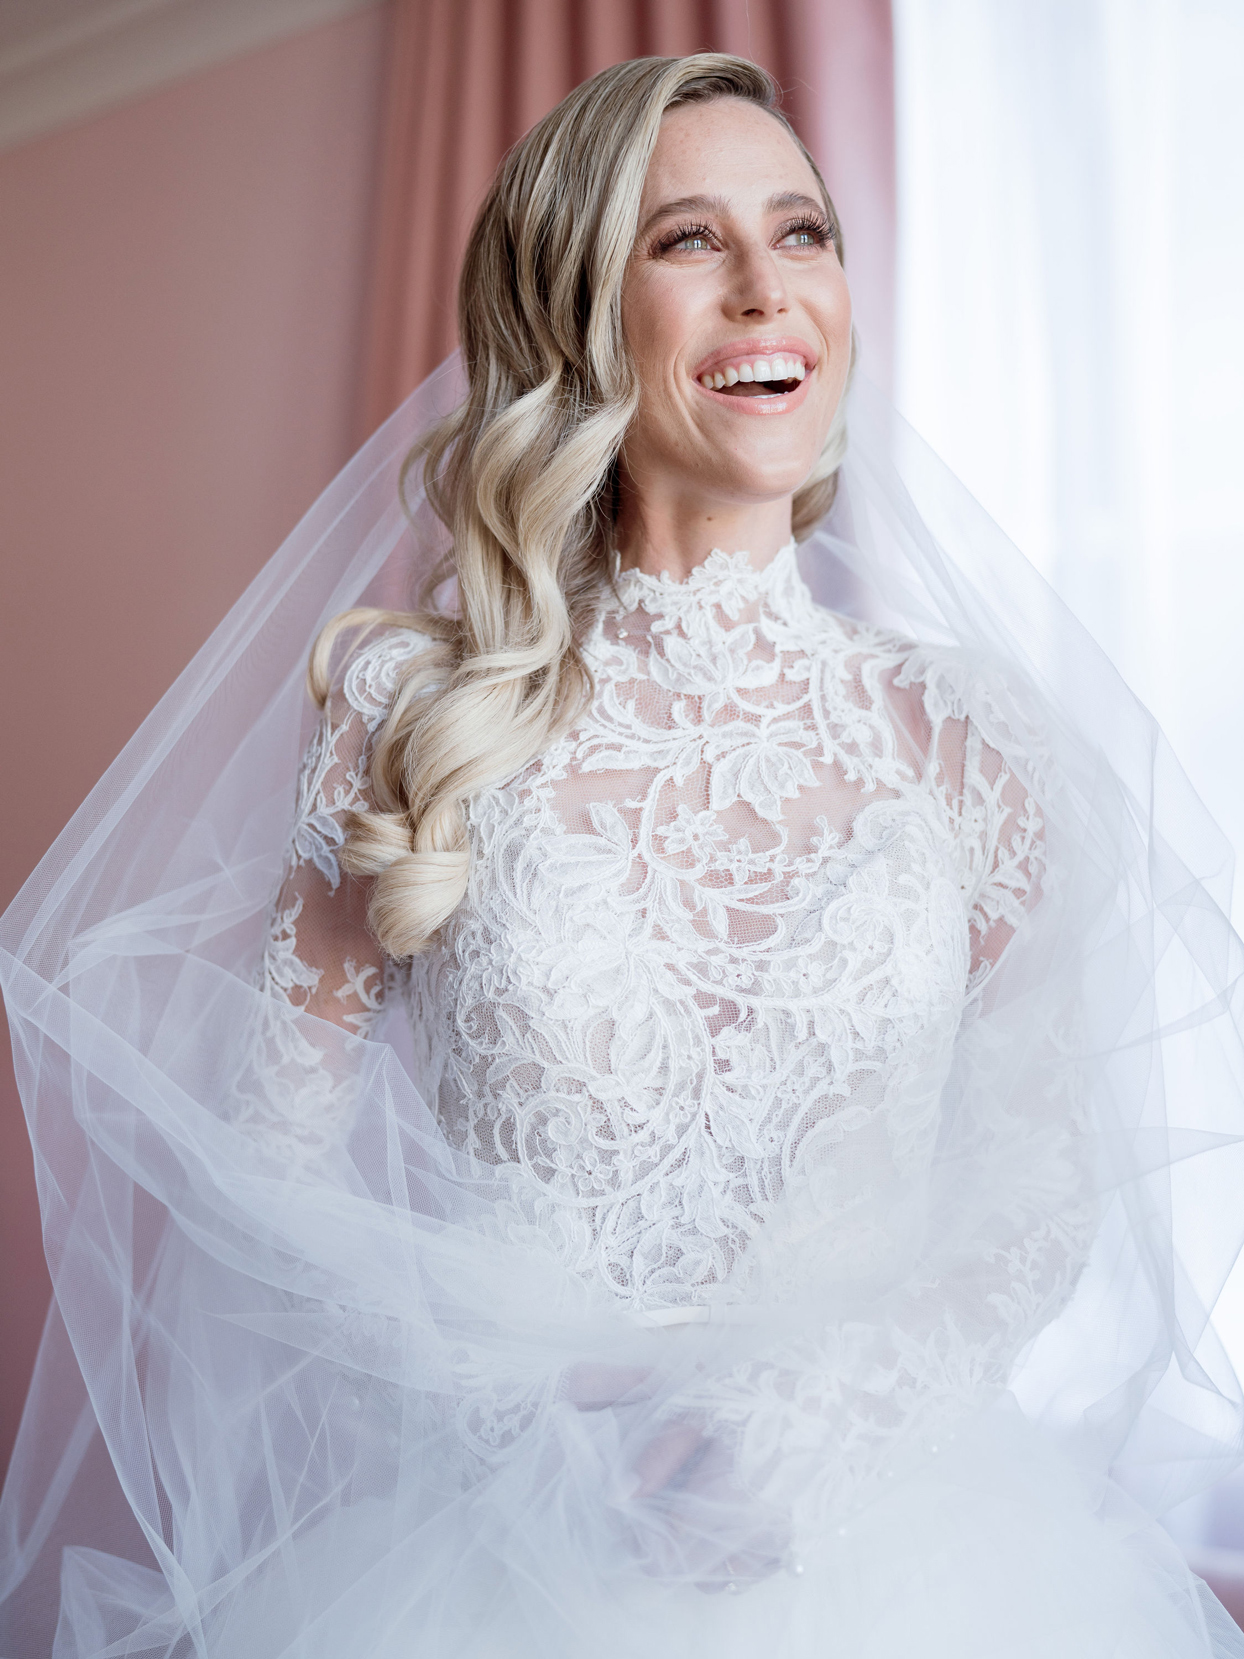 bride wearing high neck long sleeve gown laughing